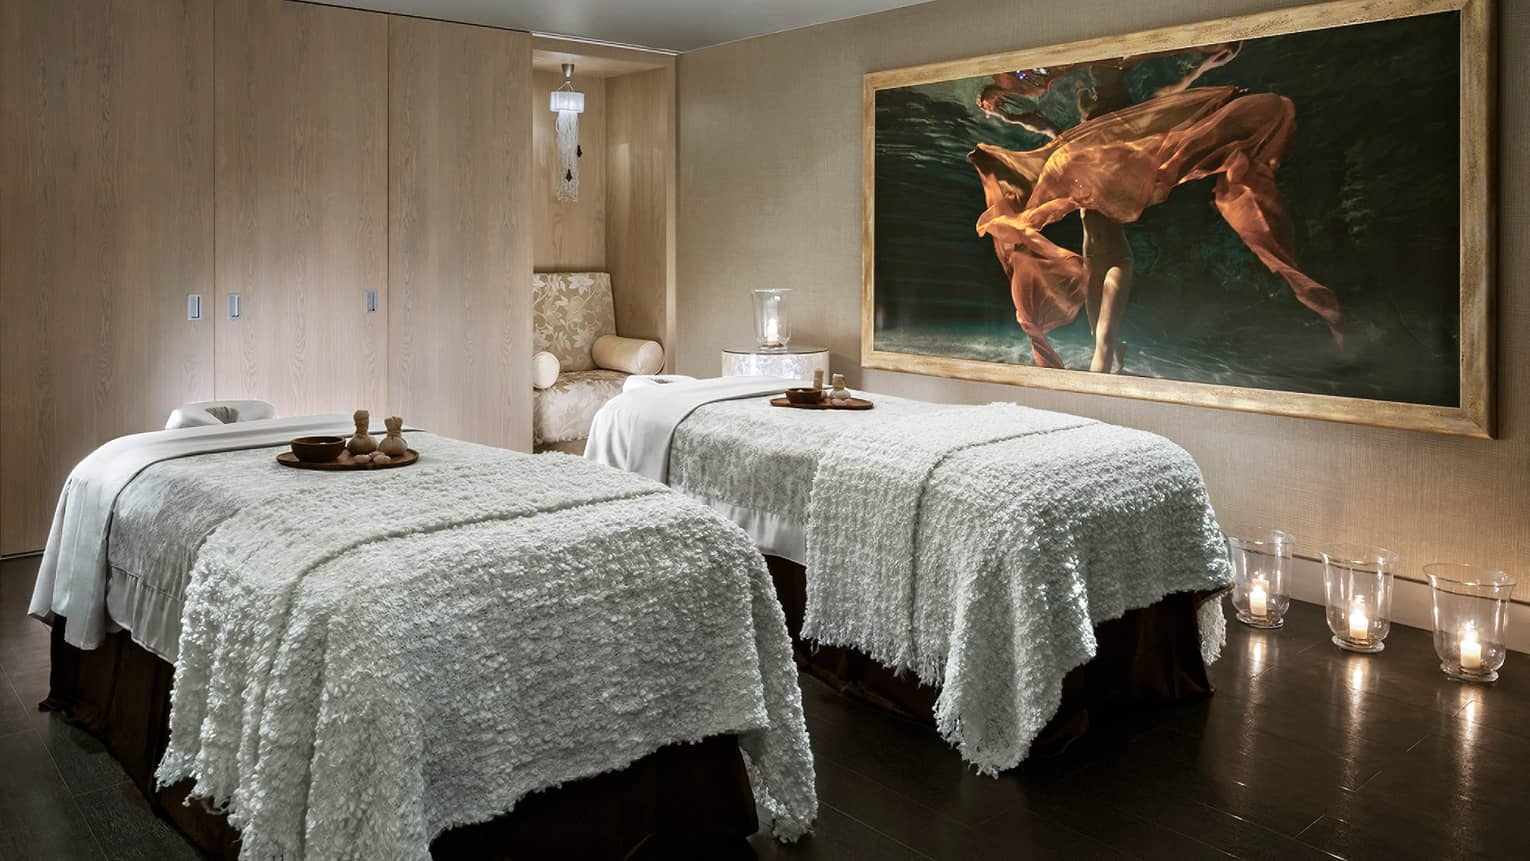 Couples spa beds with blankets in Alexandrite Massage Suite, glass candles on floor